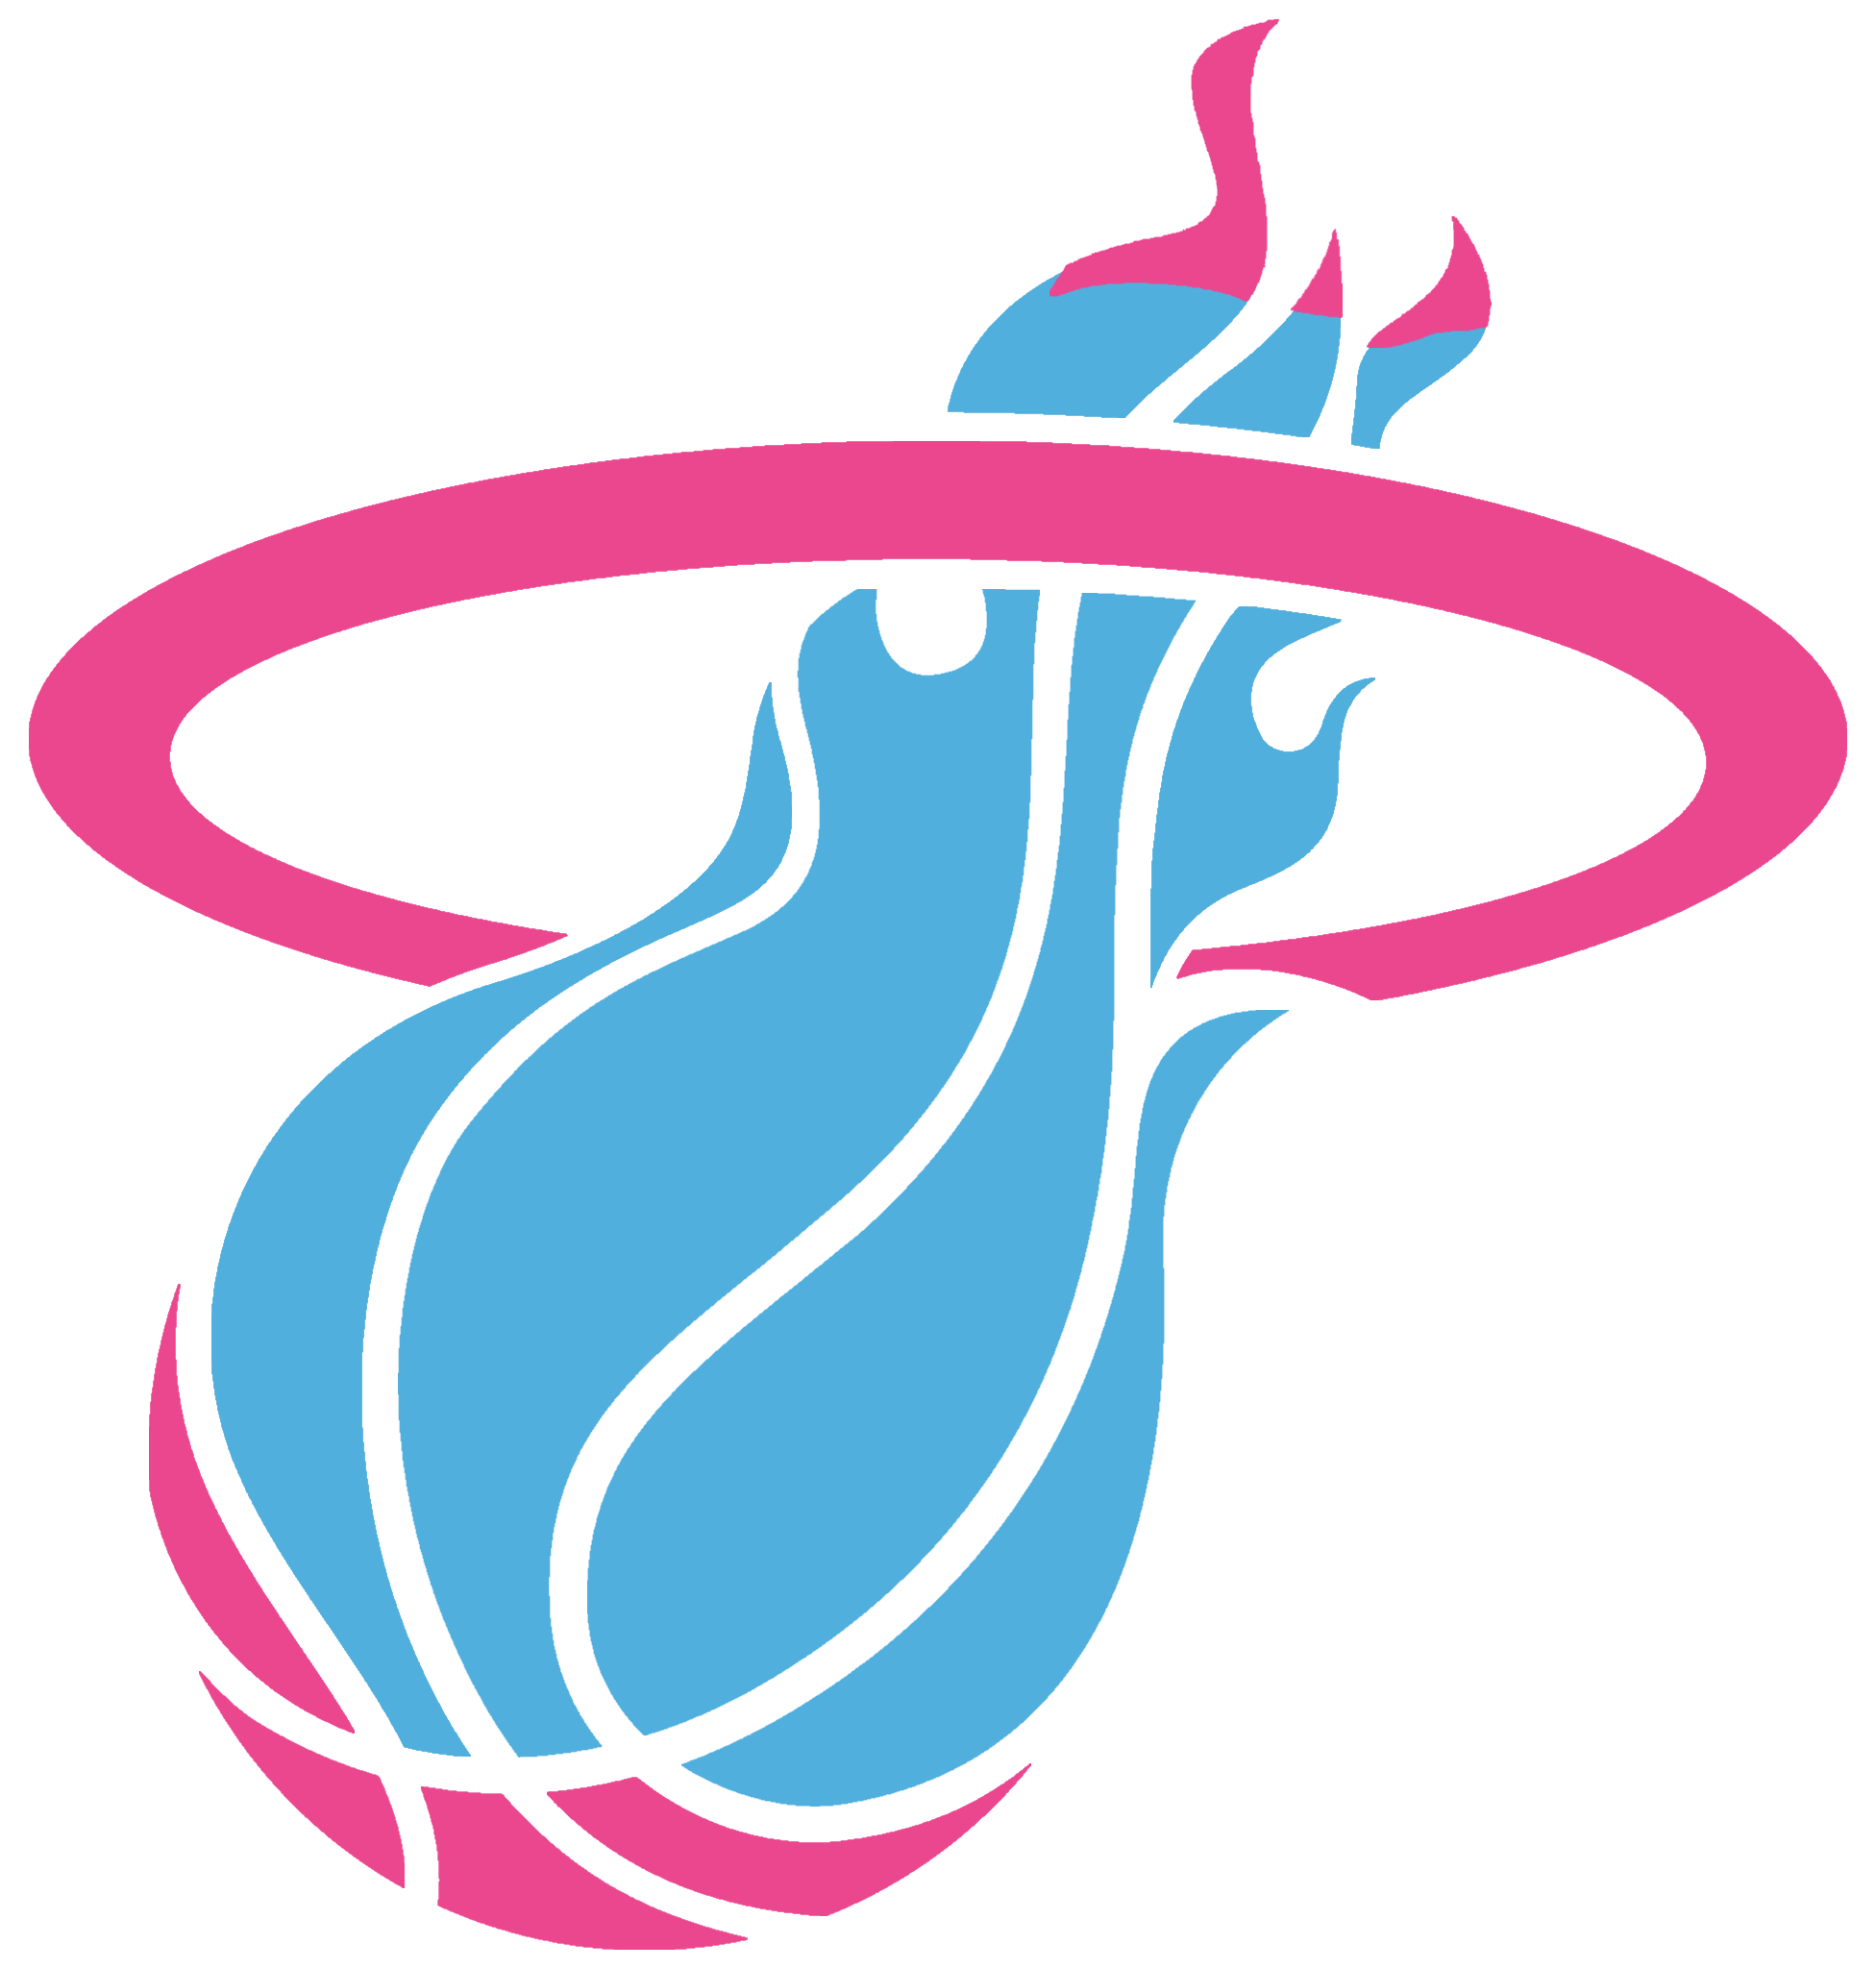 Miami Heat Vice Nights Alternate Logo By Ragerakizta On Deviantart